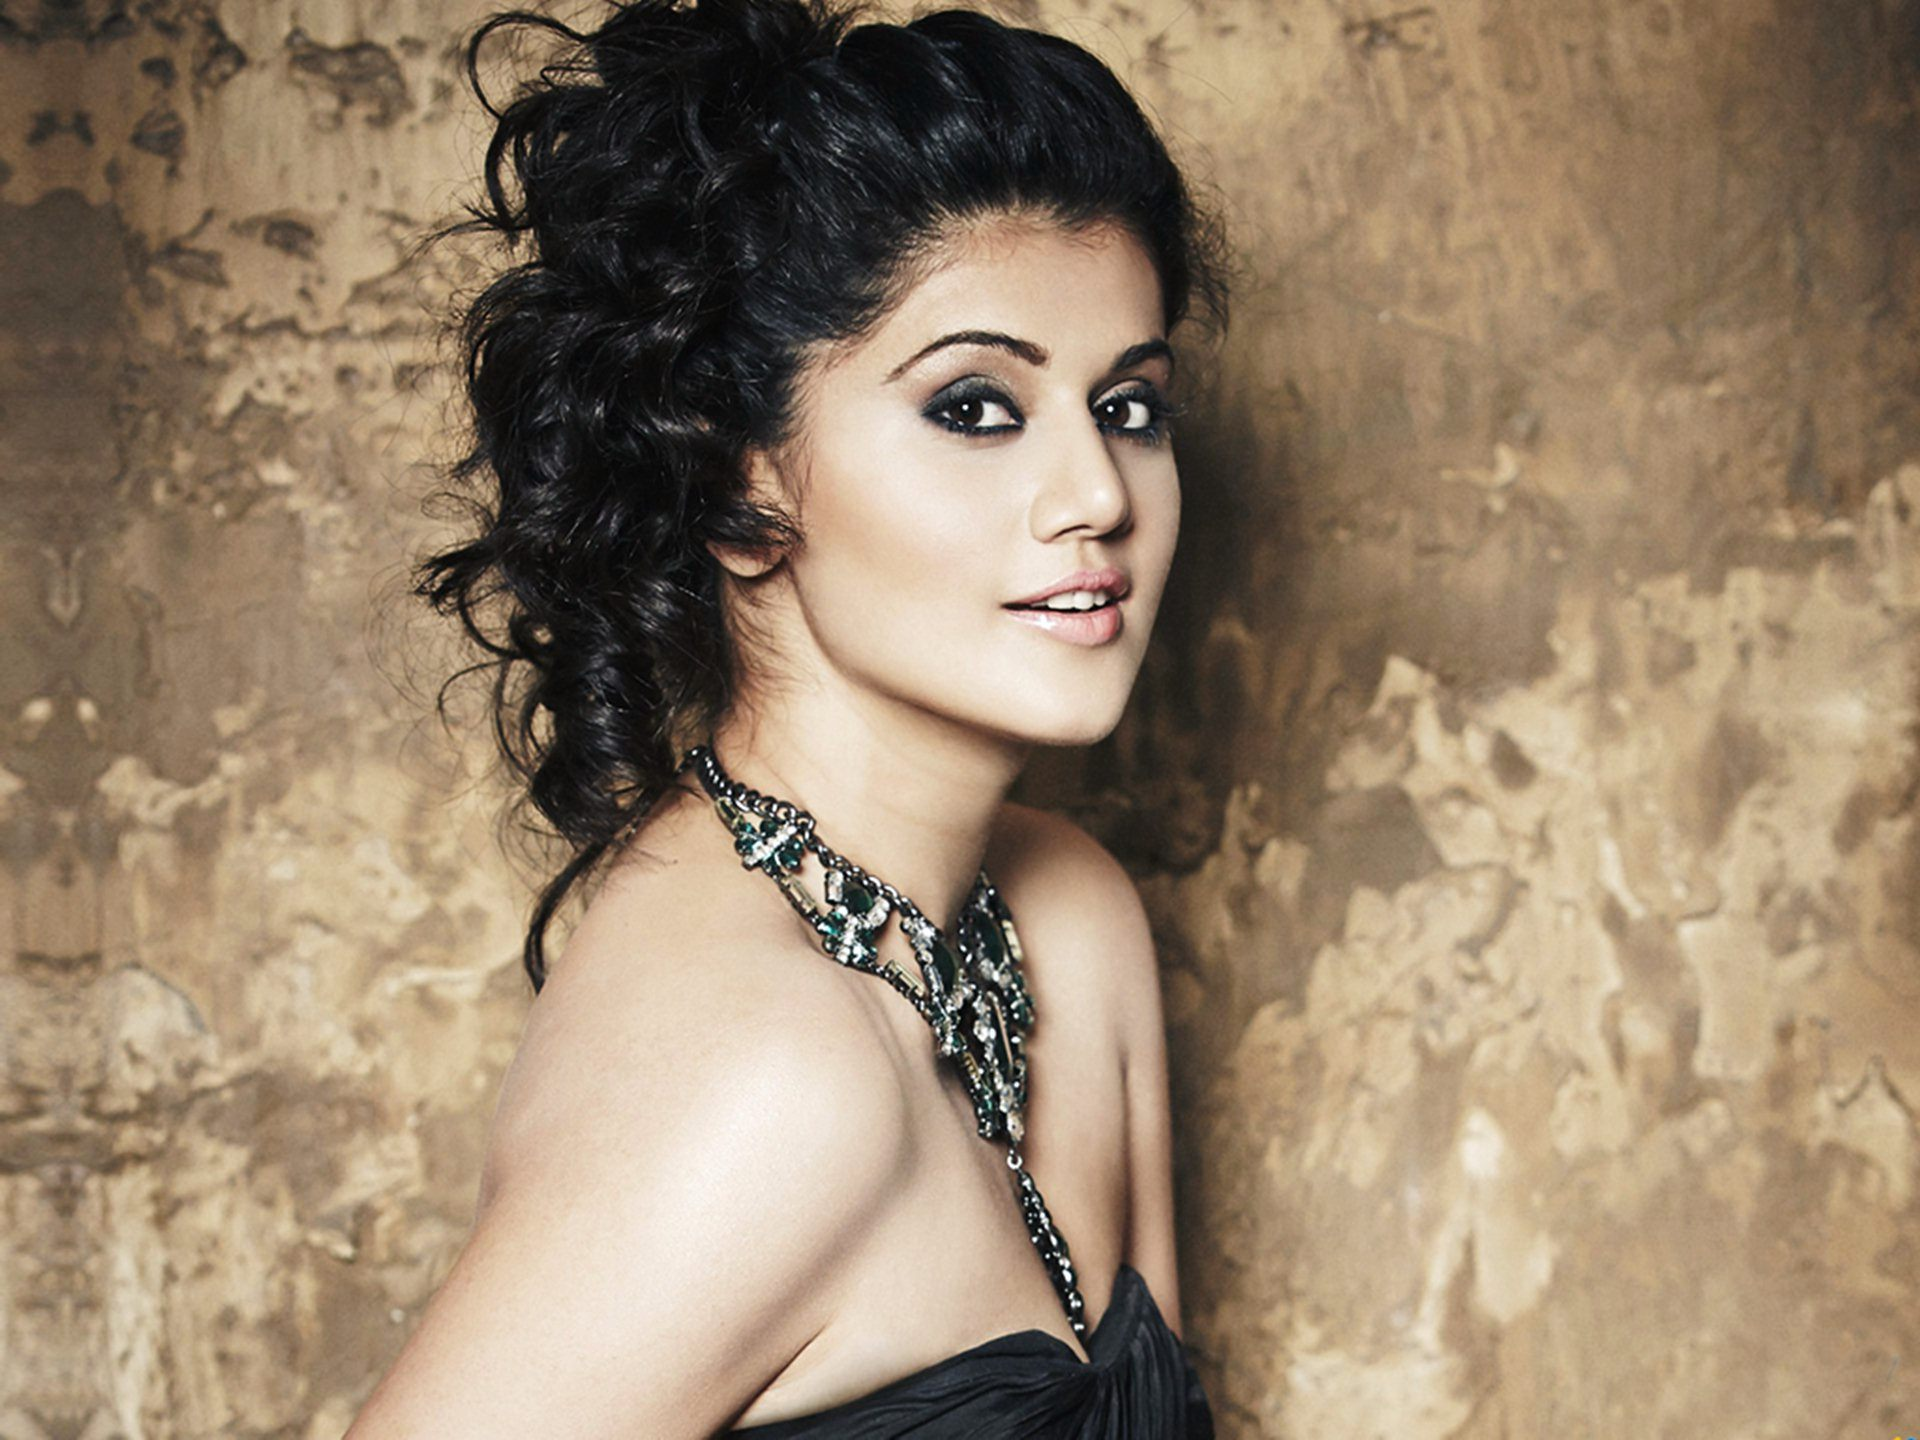 1920x1440 - Tapsee pannu Wallpapers 32